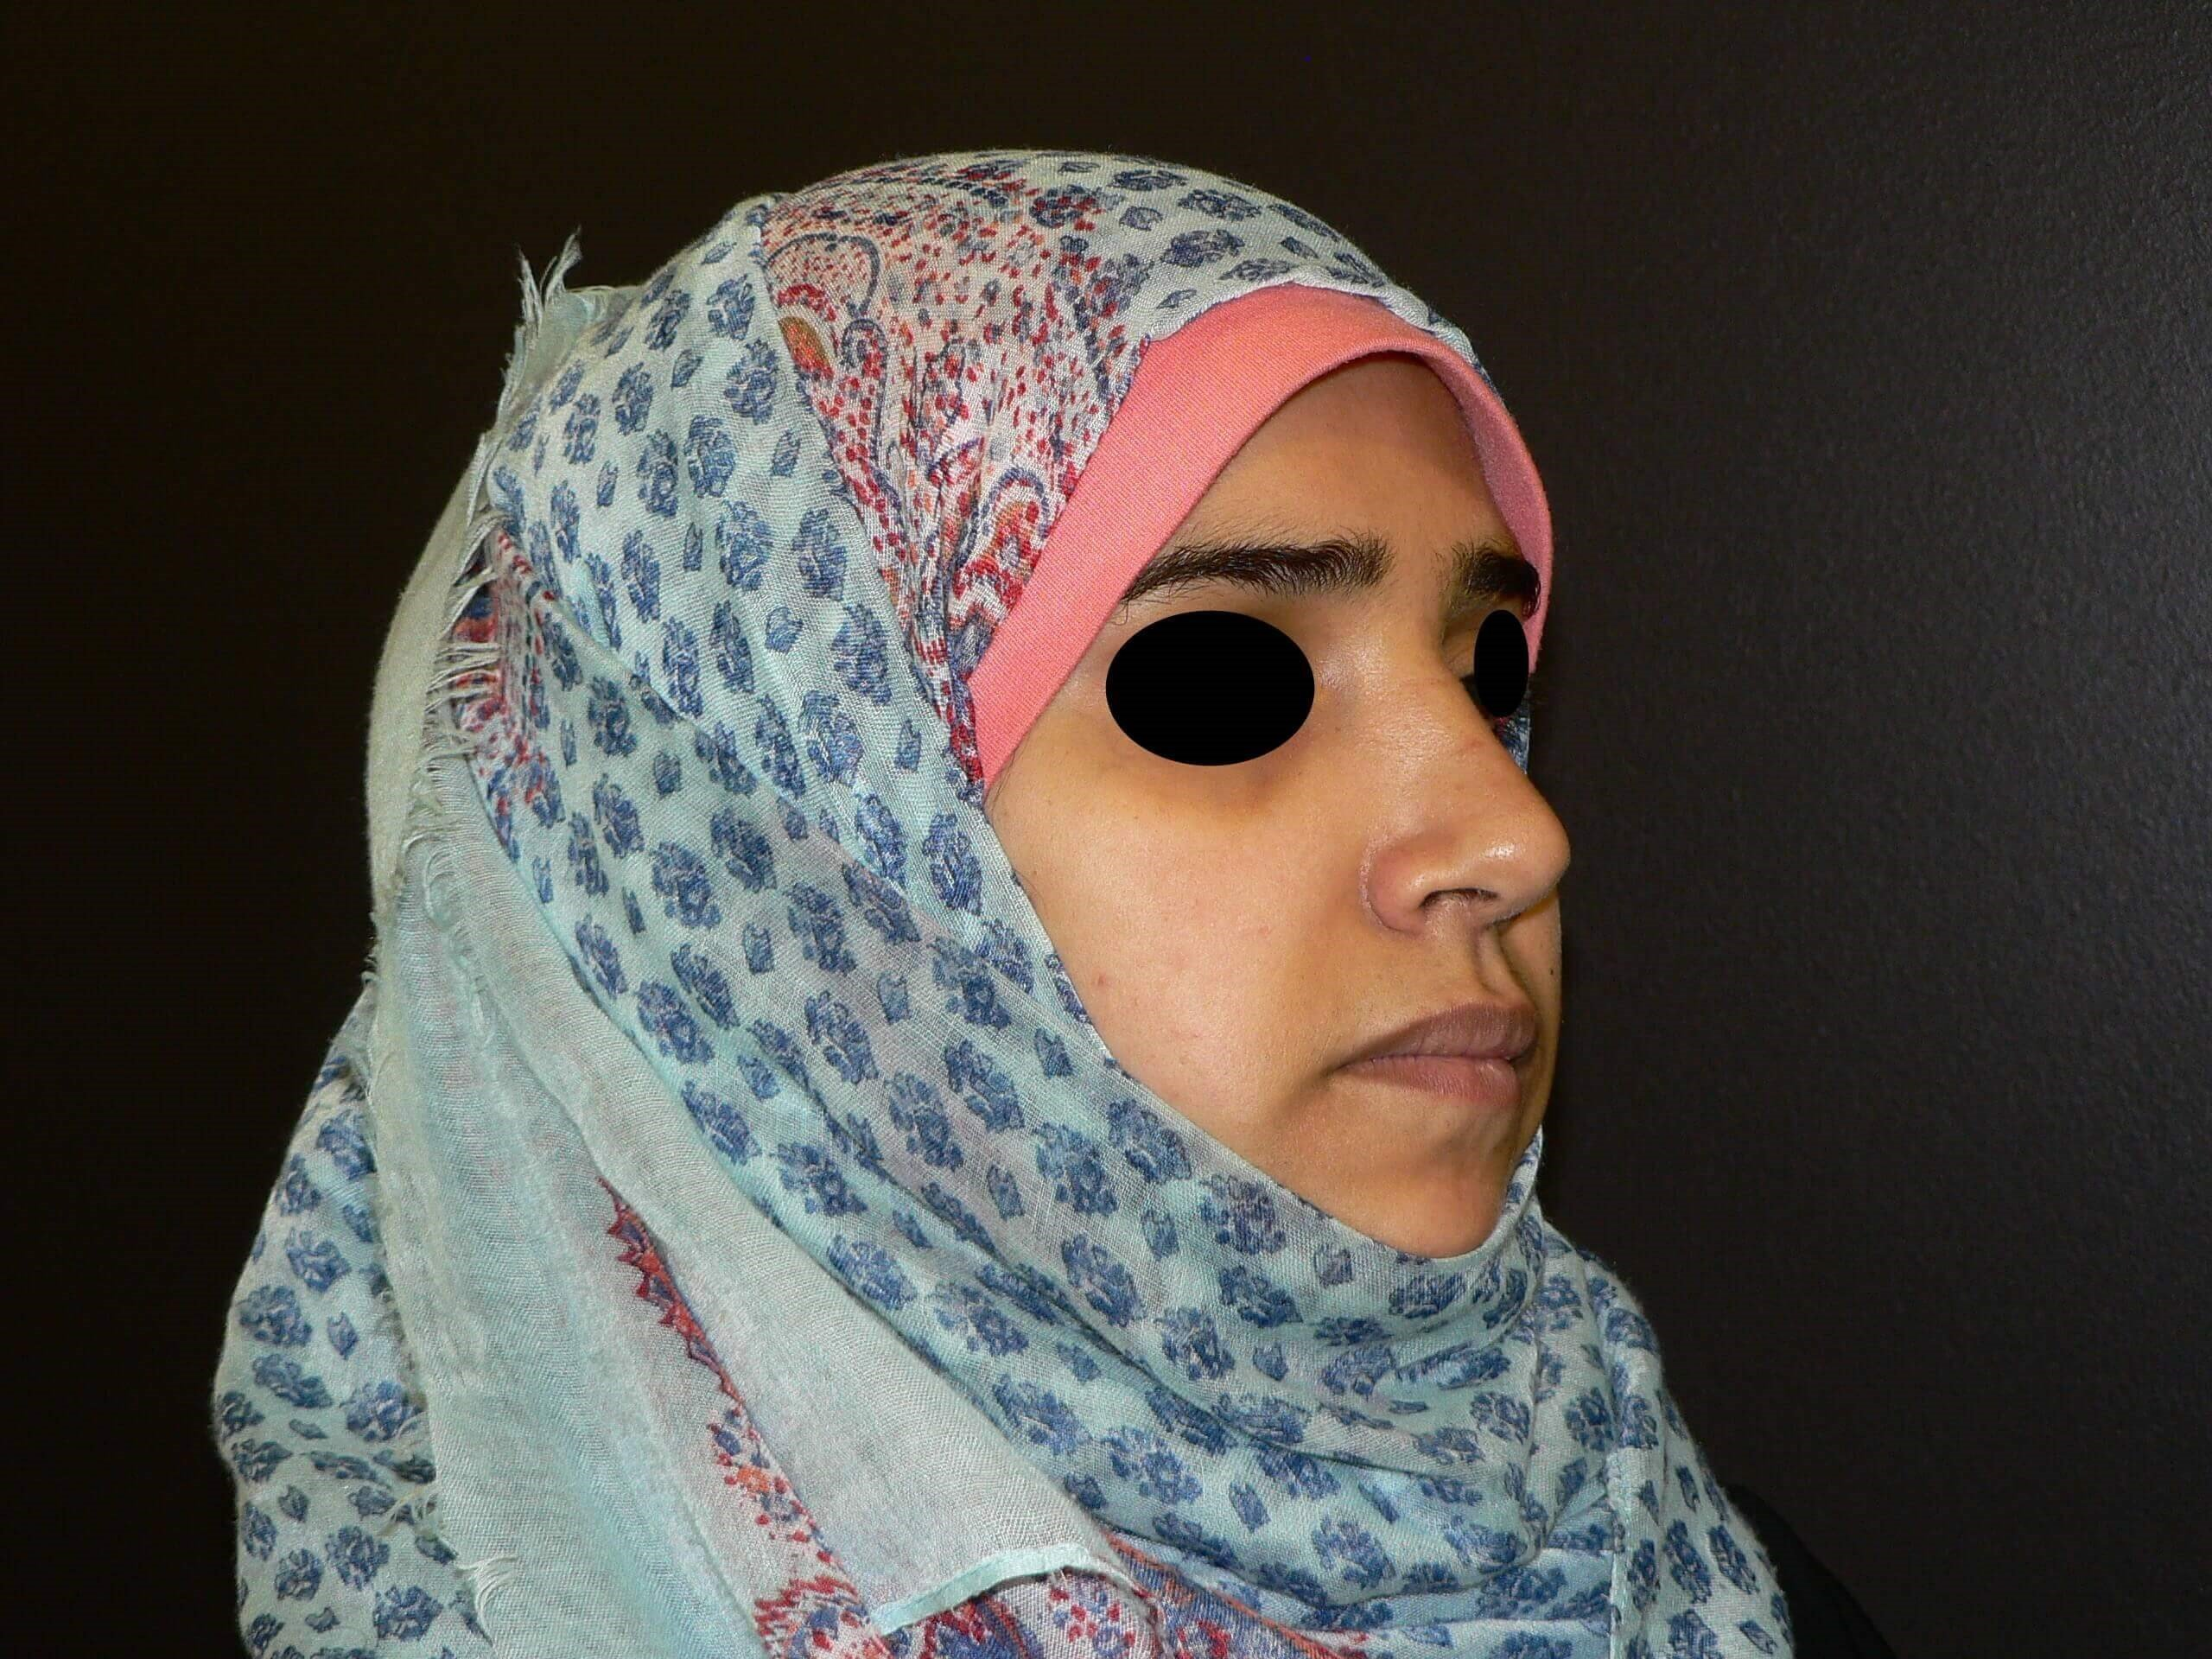 Middle Eastern Rhinoplasty After